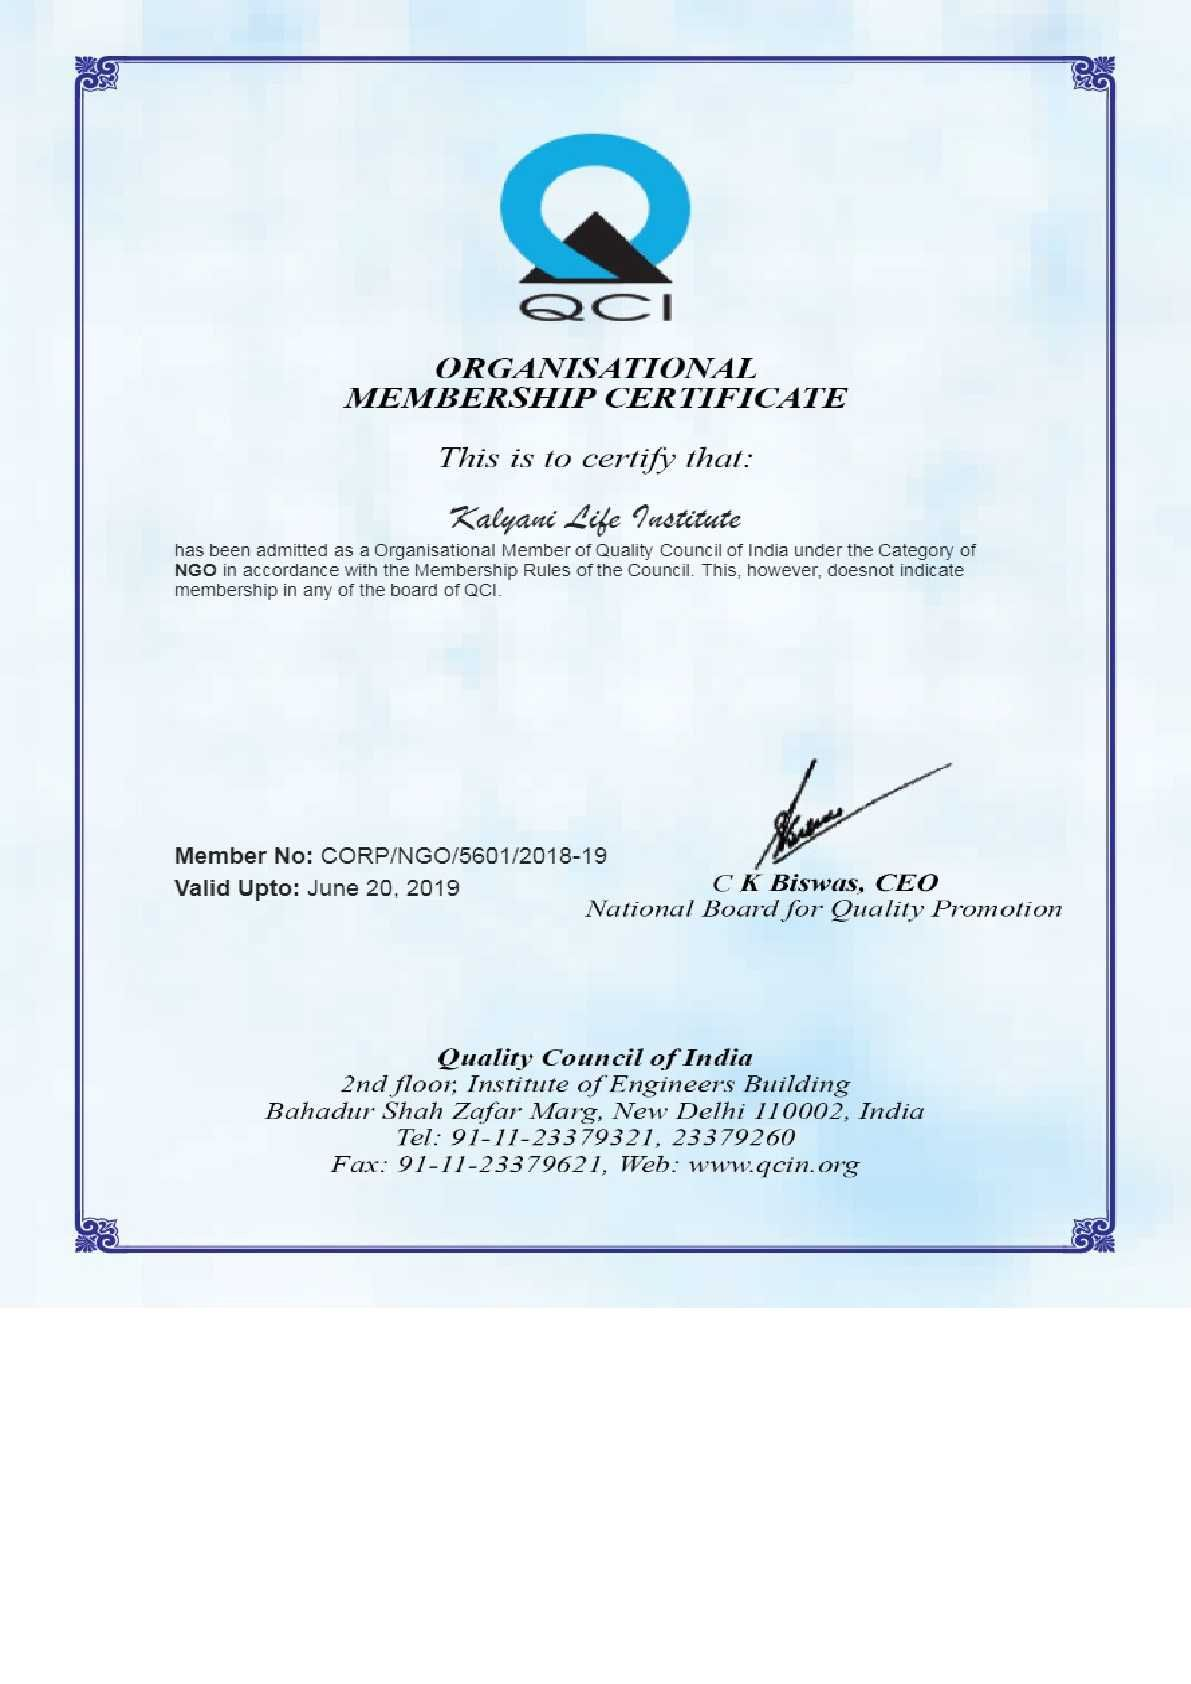 Kalyani Life Institute has now been certified by Quality Control of India.